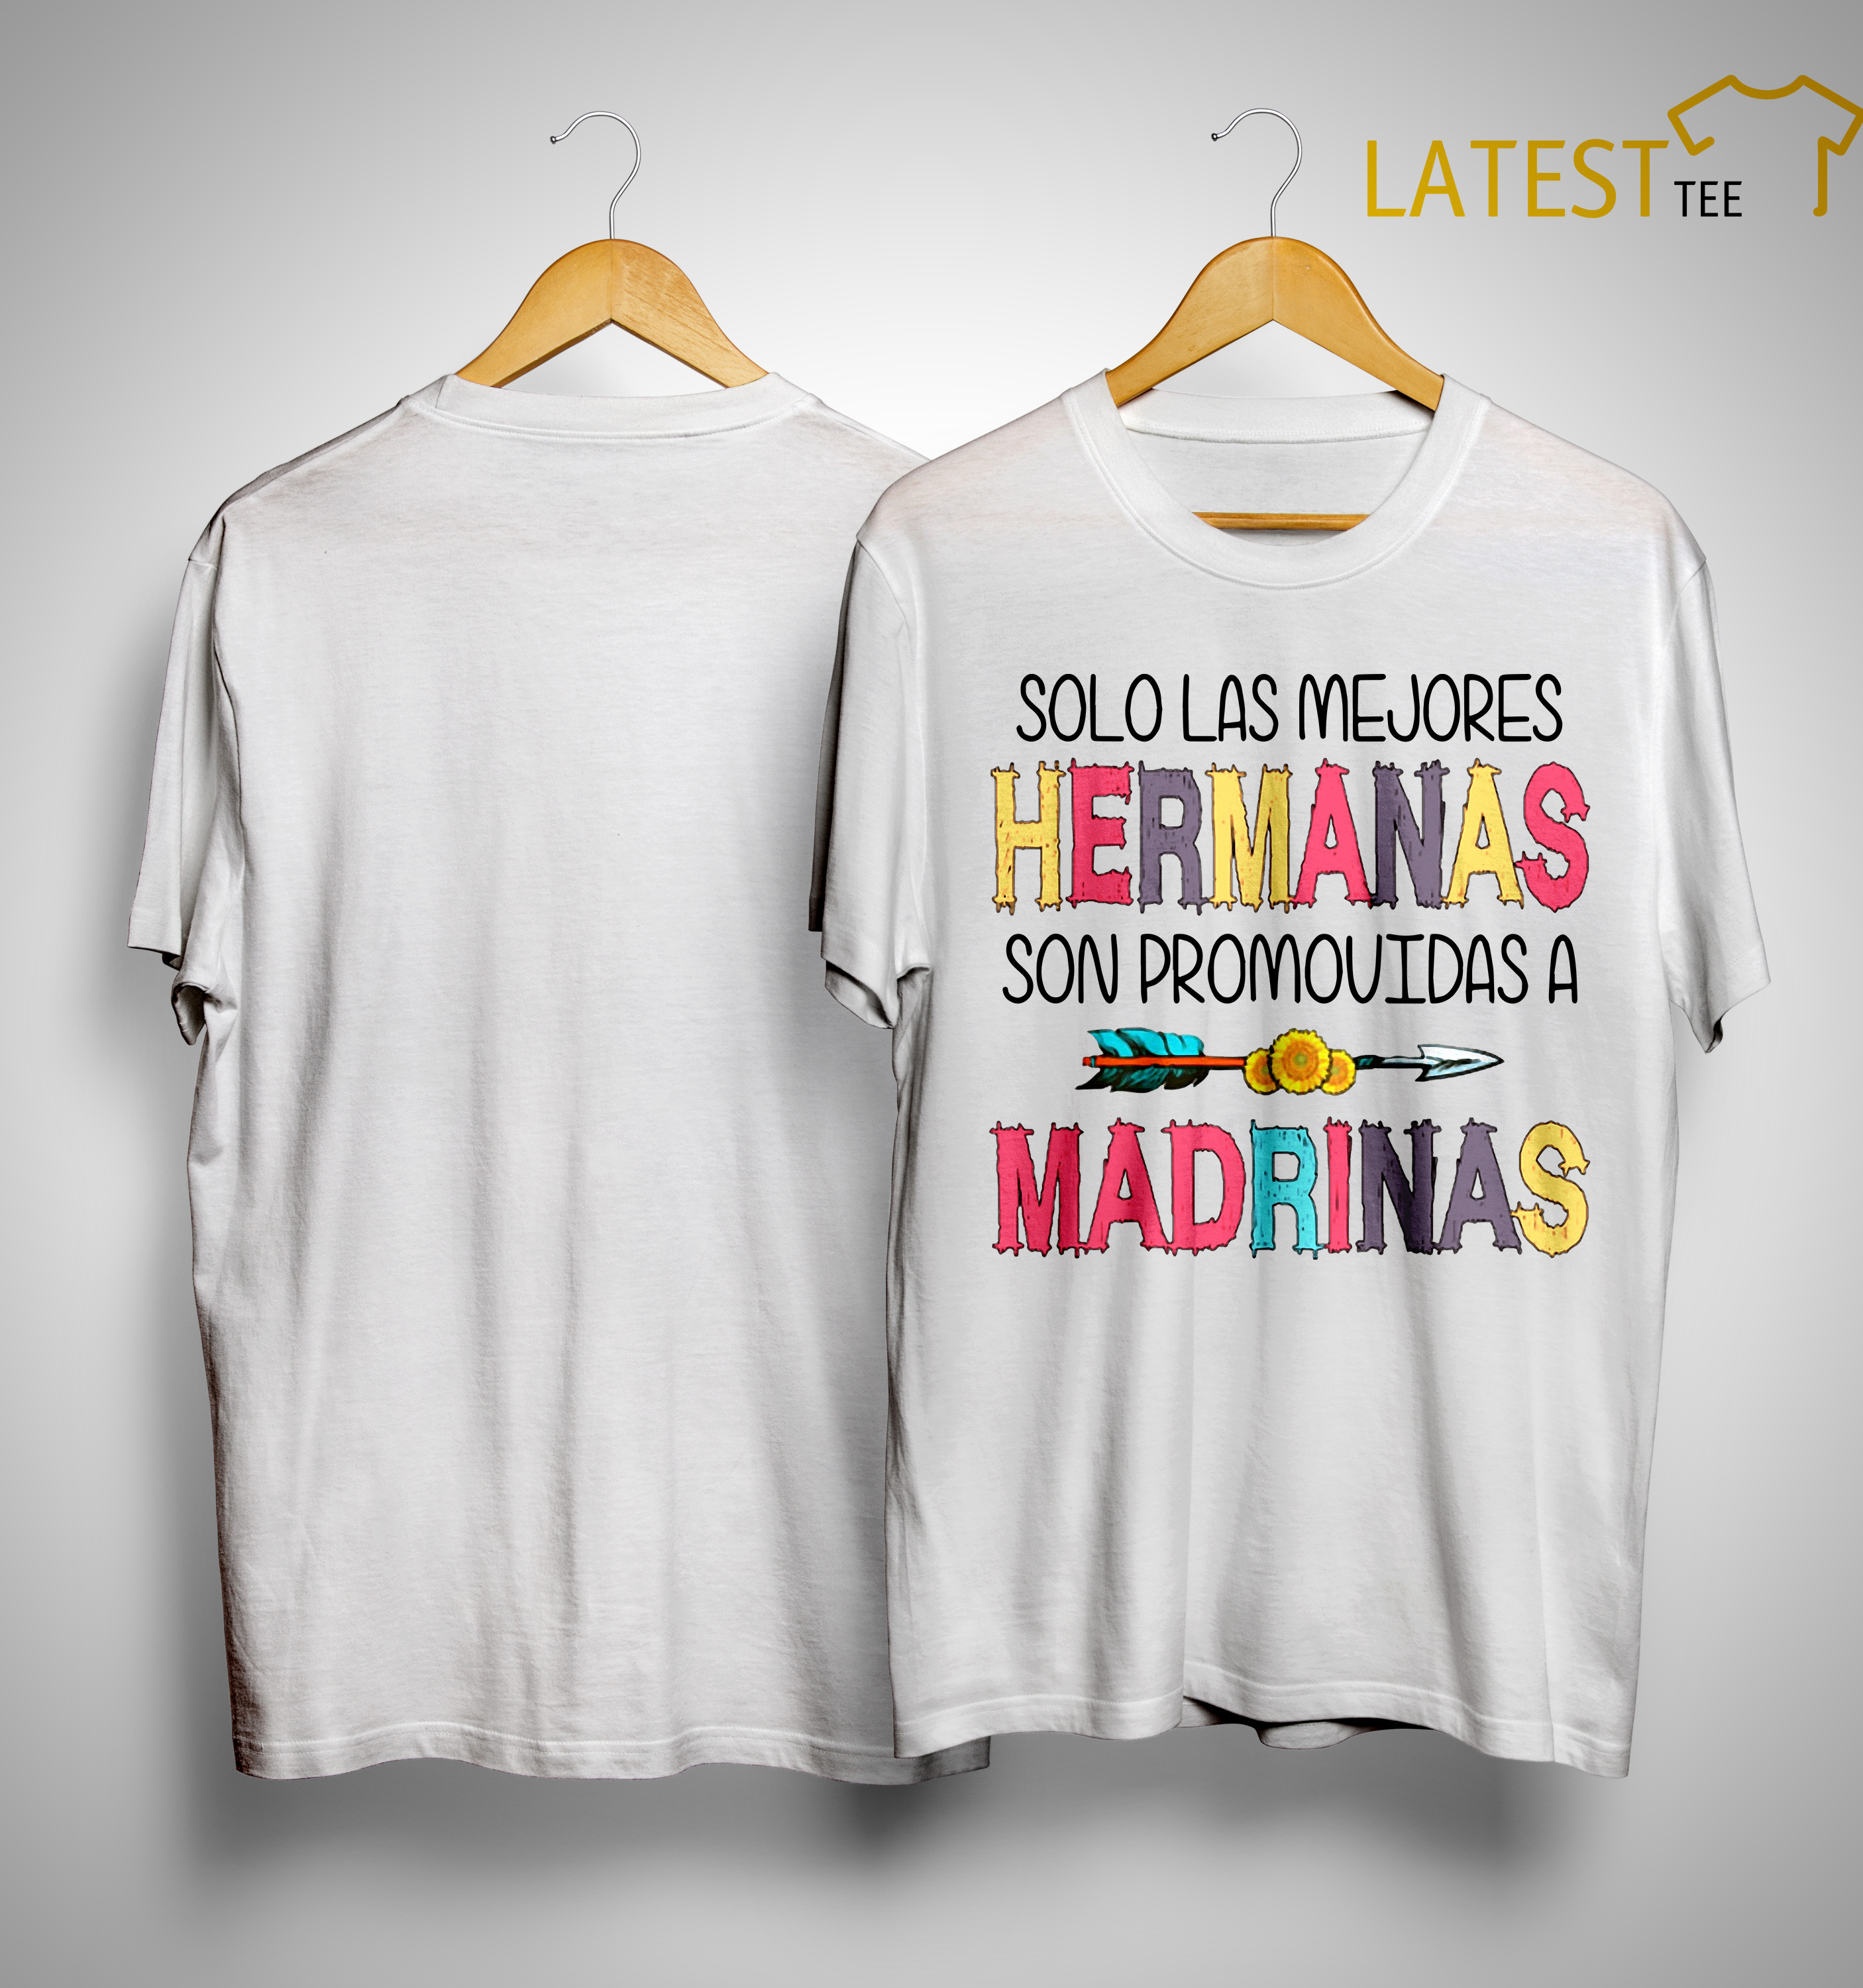 Solo Las Mejores Hermanas Son Promovidas A Madrinas Shirt Information and translations of madrinas in the most comprehensive dictionary definitions resource on the web. latestee